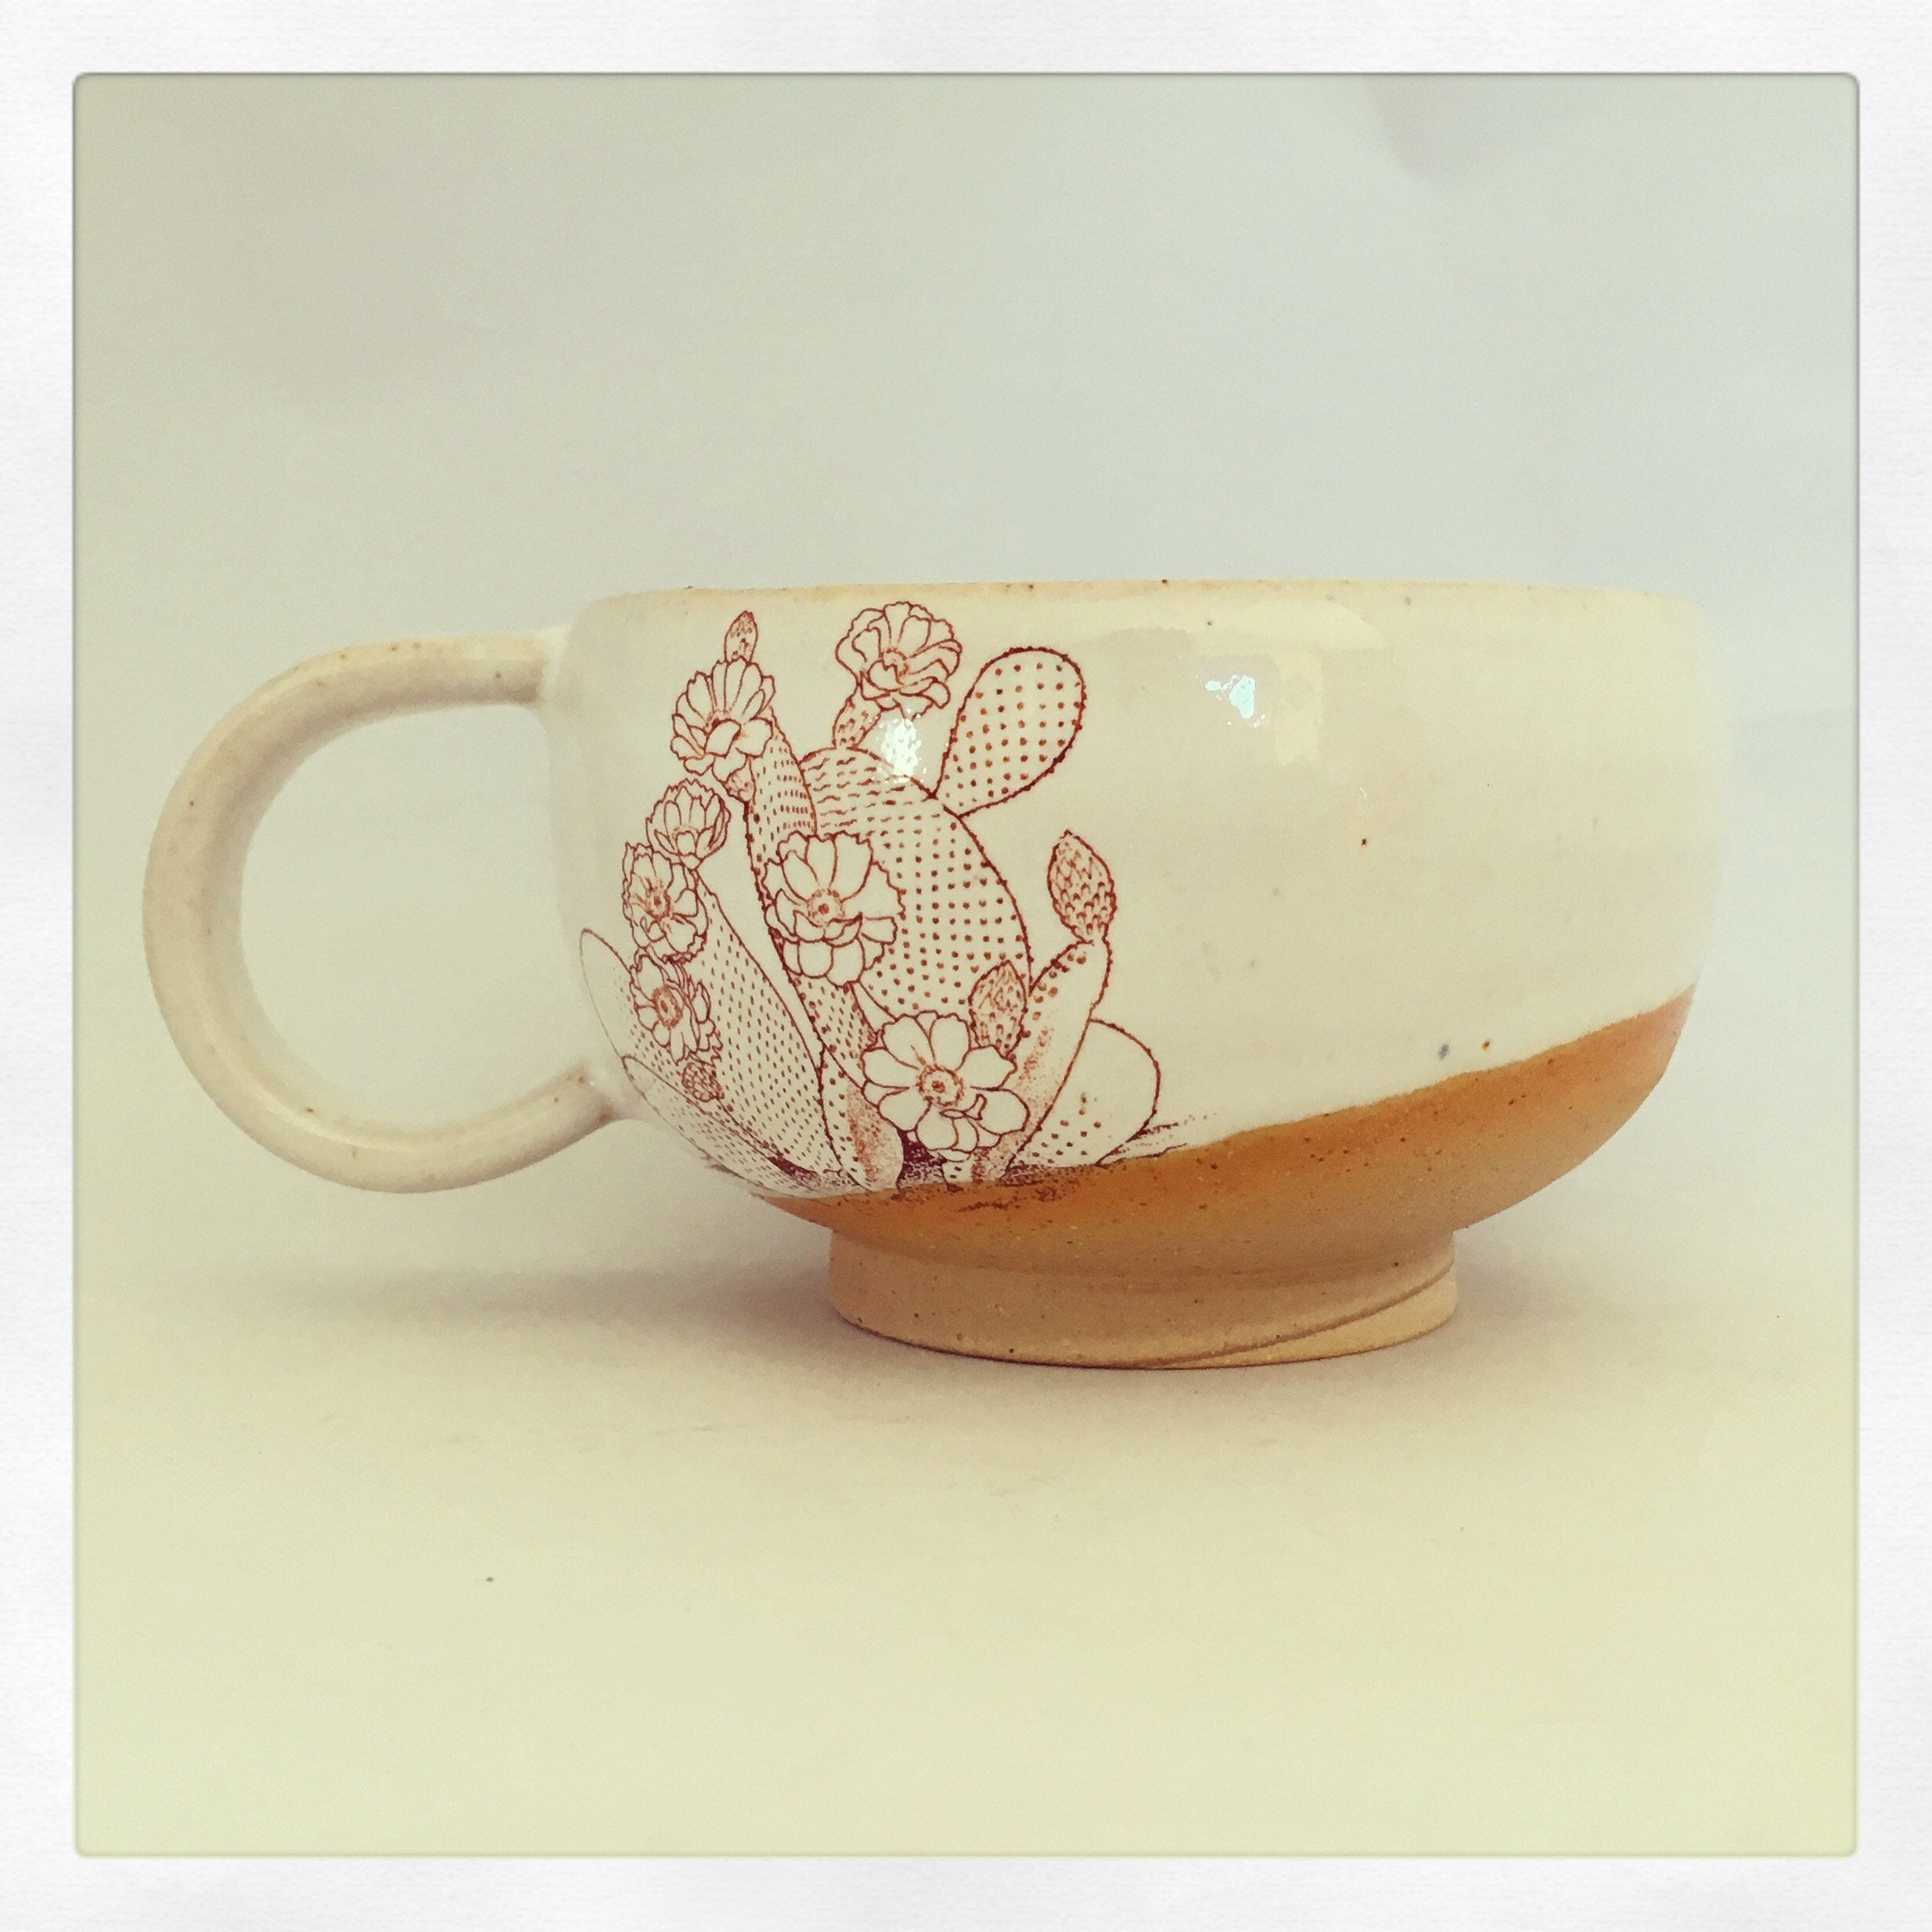 Crazy Cat Lady Ceramics - Shorty Cactus Latte Mug